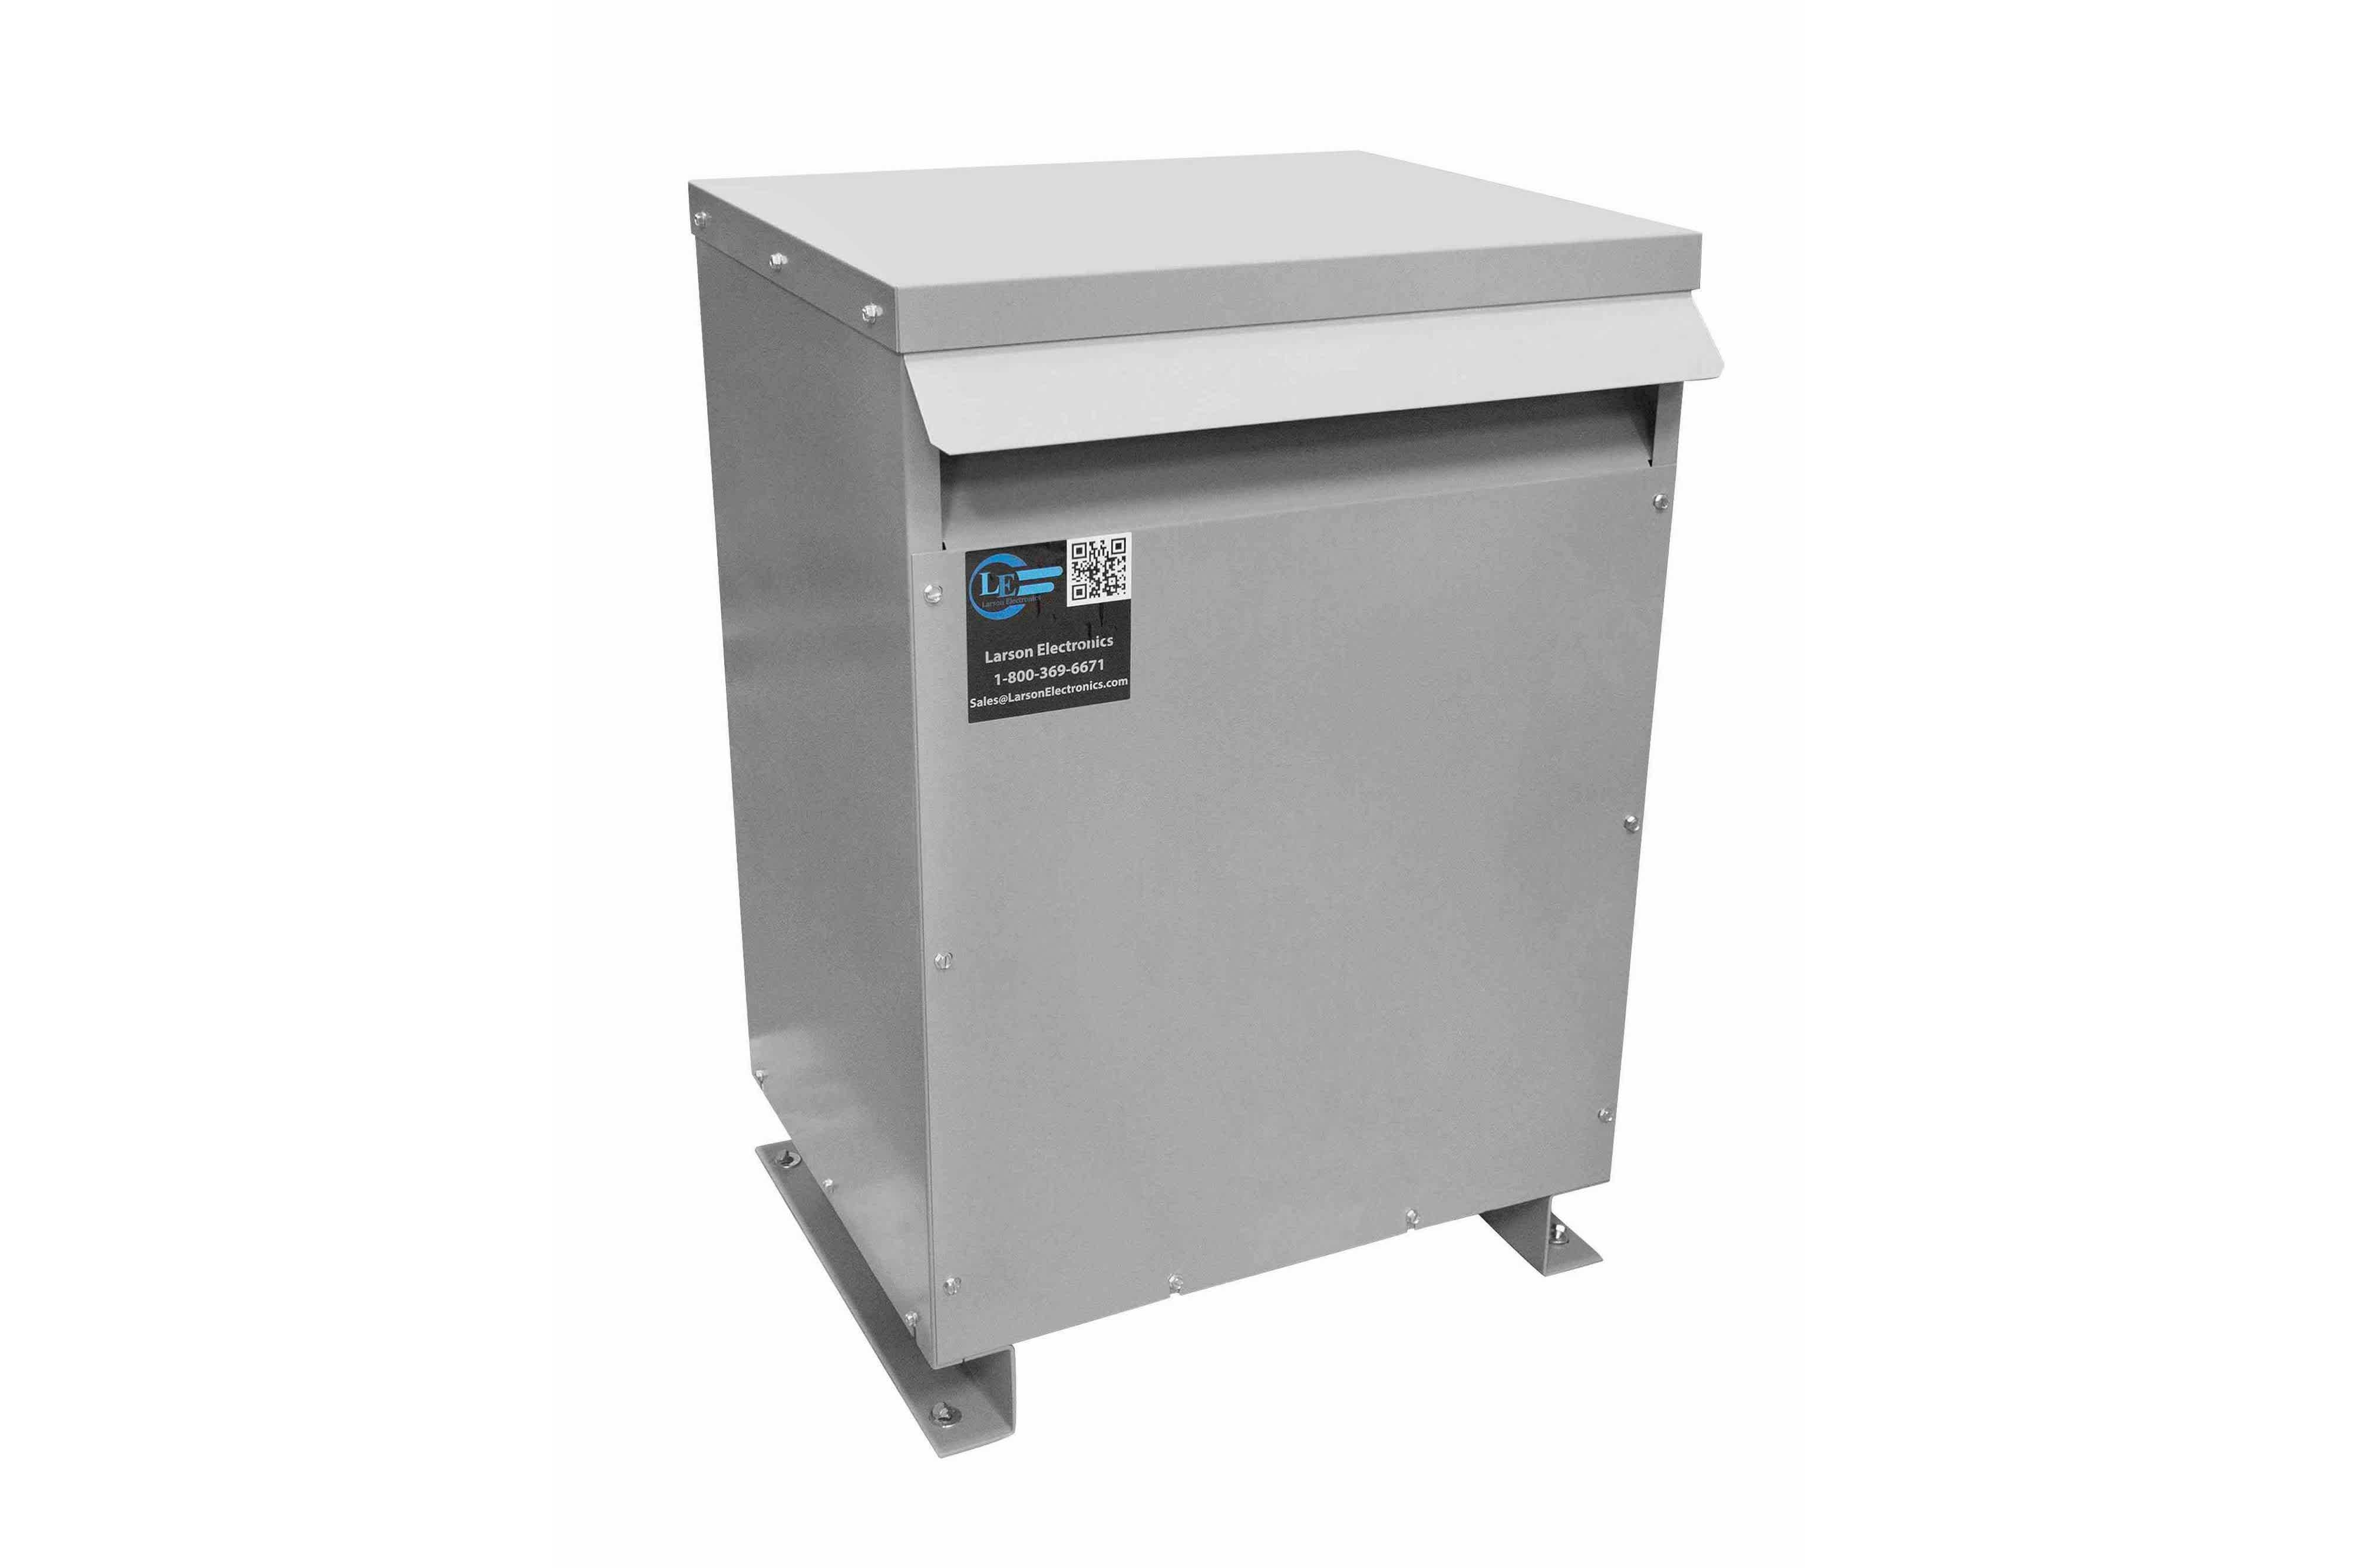 60 kVA 3PH DOE Transformer, 230V Delta Primary, 480Y/277 Wye-N Secondary, N3R, Ventilated, 60 Hz